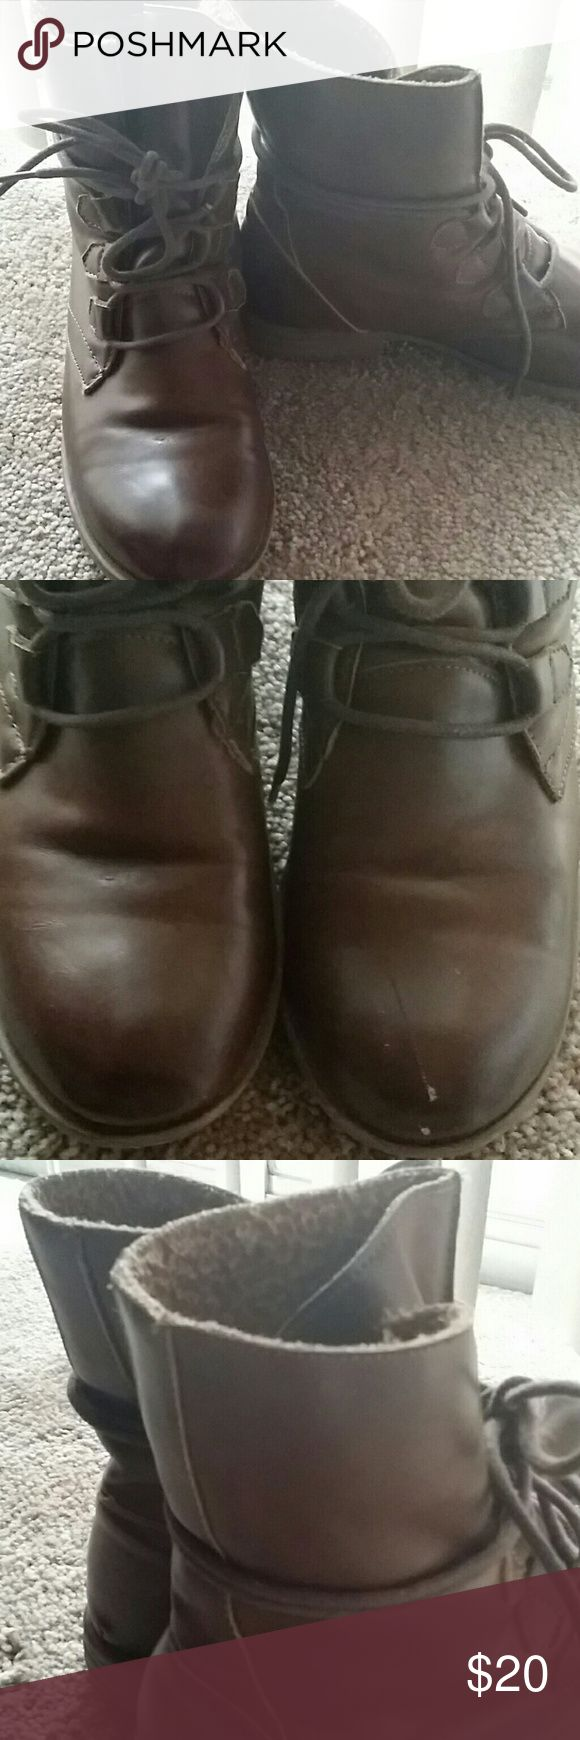 Wrapped ankle boots Insulated winter boots, laces wrap around, very warm, only worn a couple times, has a minor scratch on one boot, in good condition Wanted Shoes Winter & Rain Boots